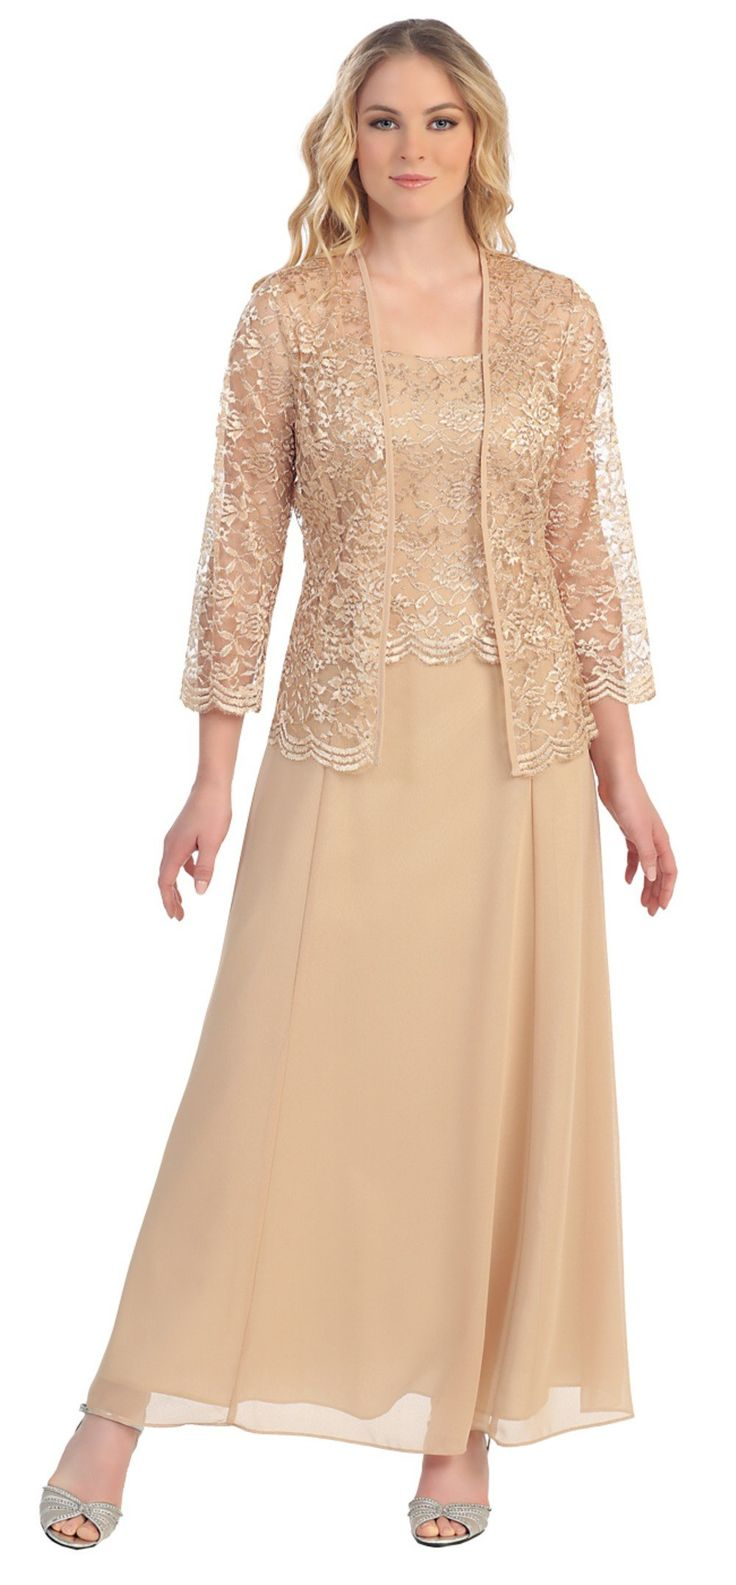 Womens Long Mother of the Bride Plus Size Formal Lace Dress with Jacket (3X, Champagne)